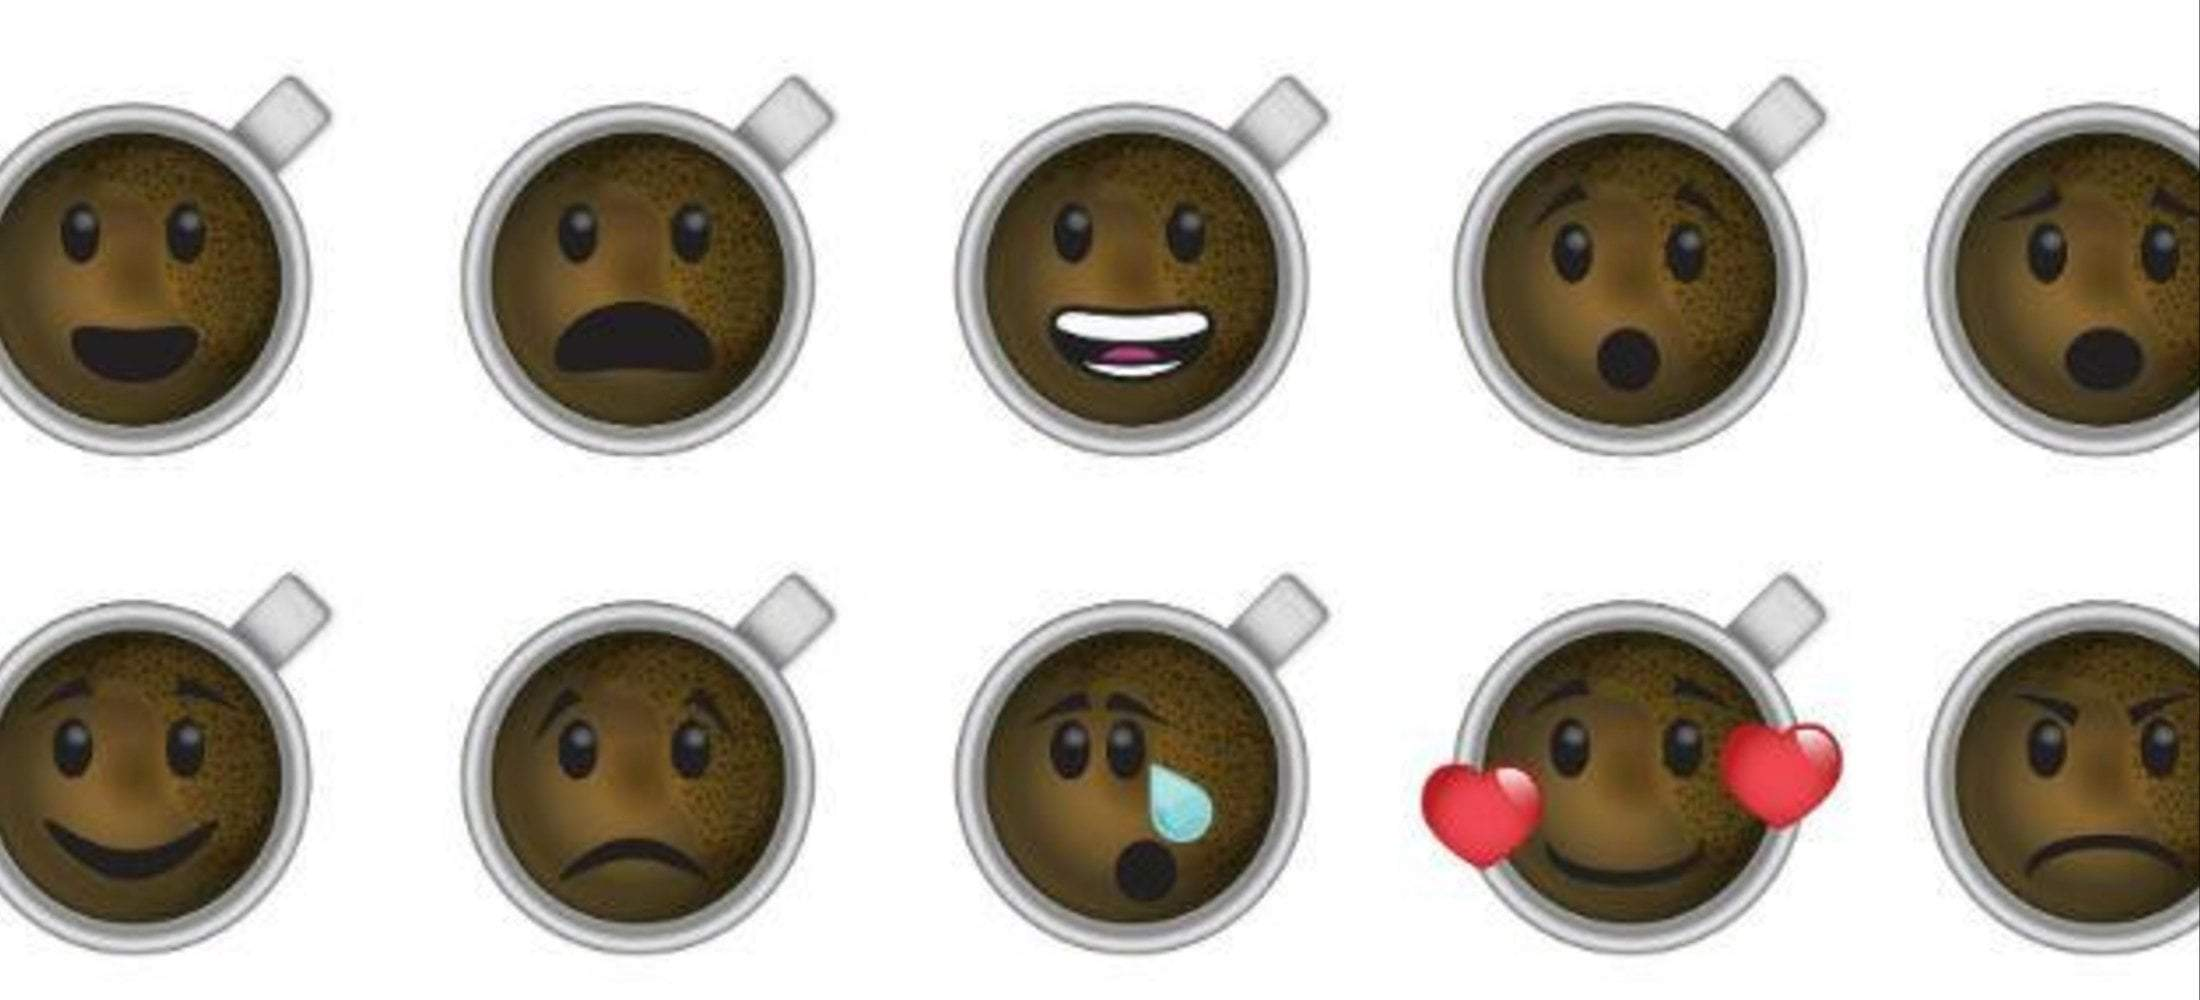 Use the Coffee Emoji to Express Your Java Joy